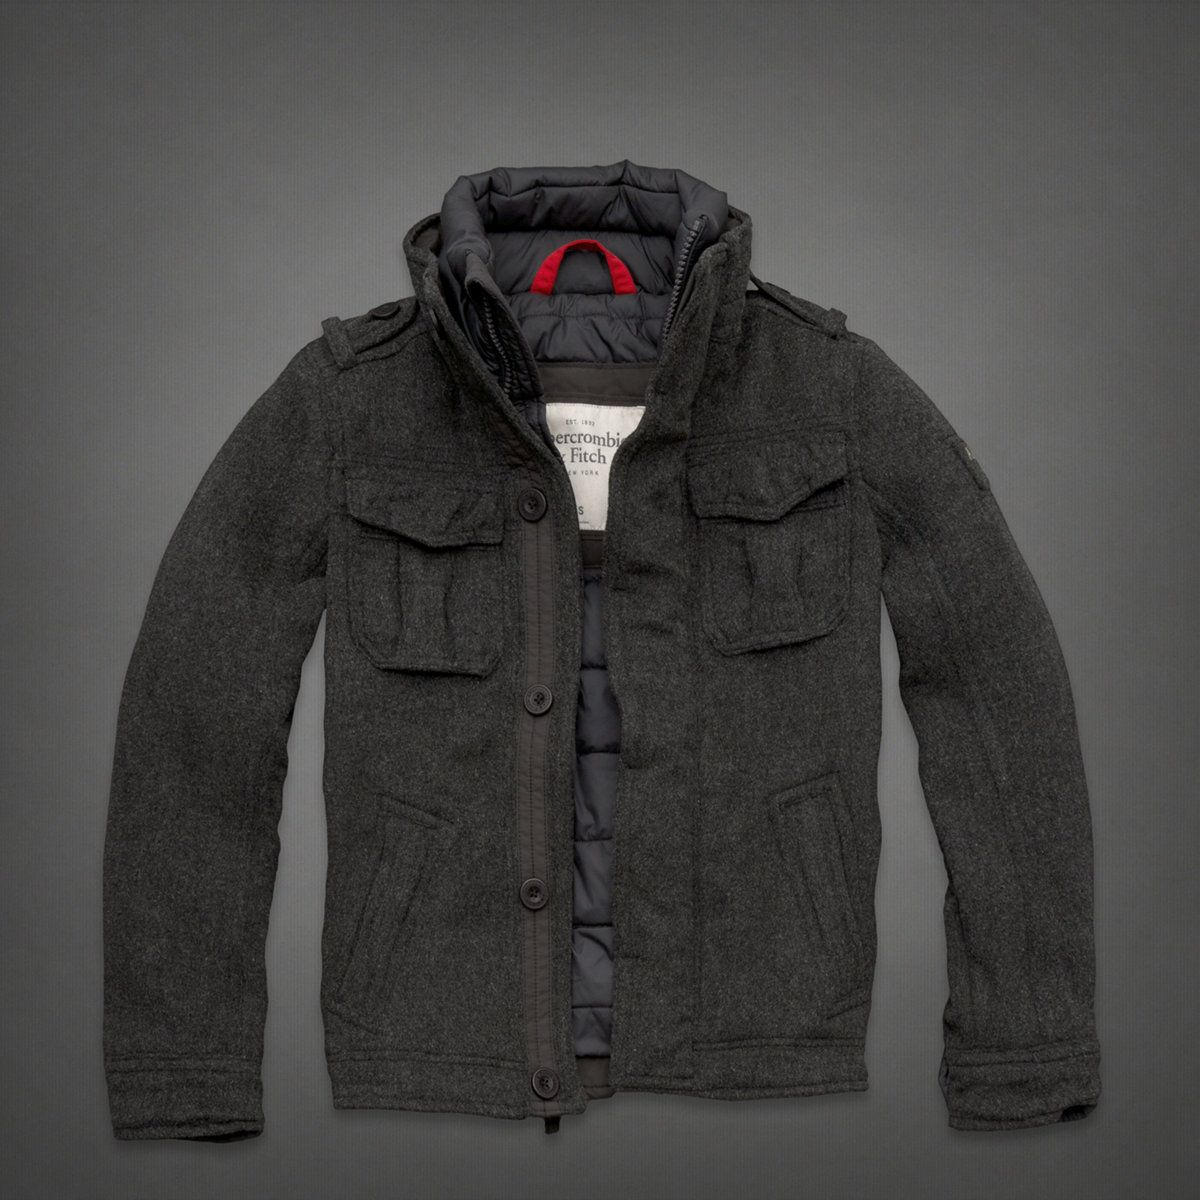 Buell Mountain Jacket By Abercrombie Fitch Mens Outfits Jackets Leather Outerwear [ 1200 x 1200 Pixel ]